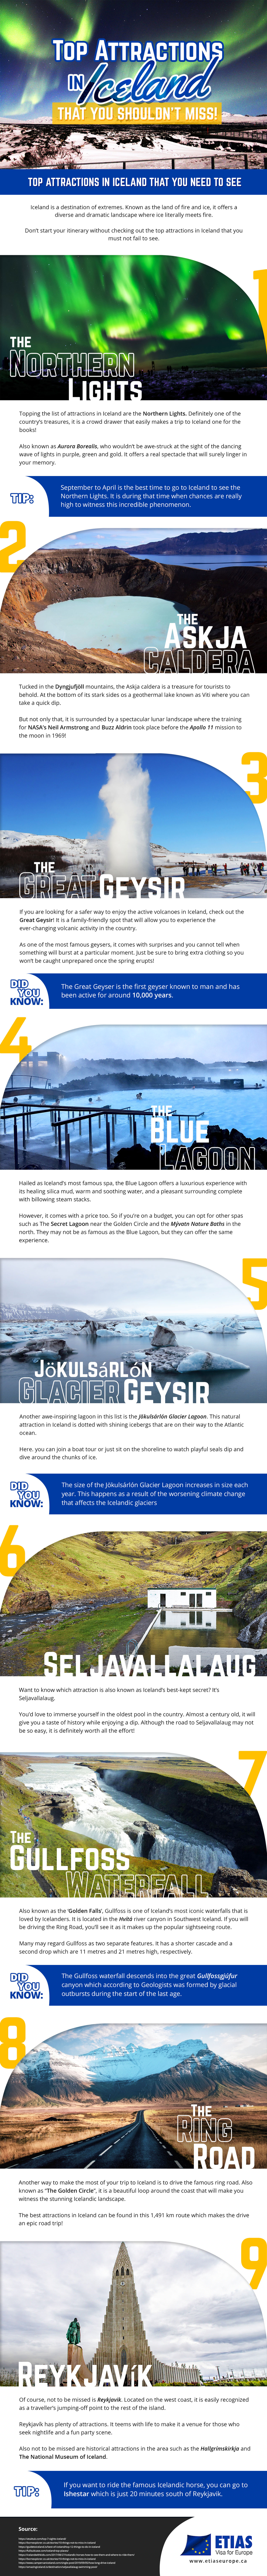 Top Attractions in Iceland that You Need to See